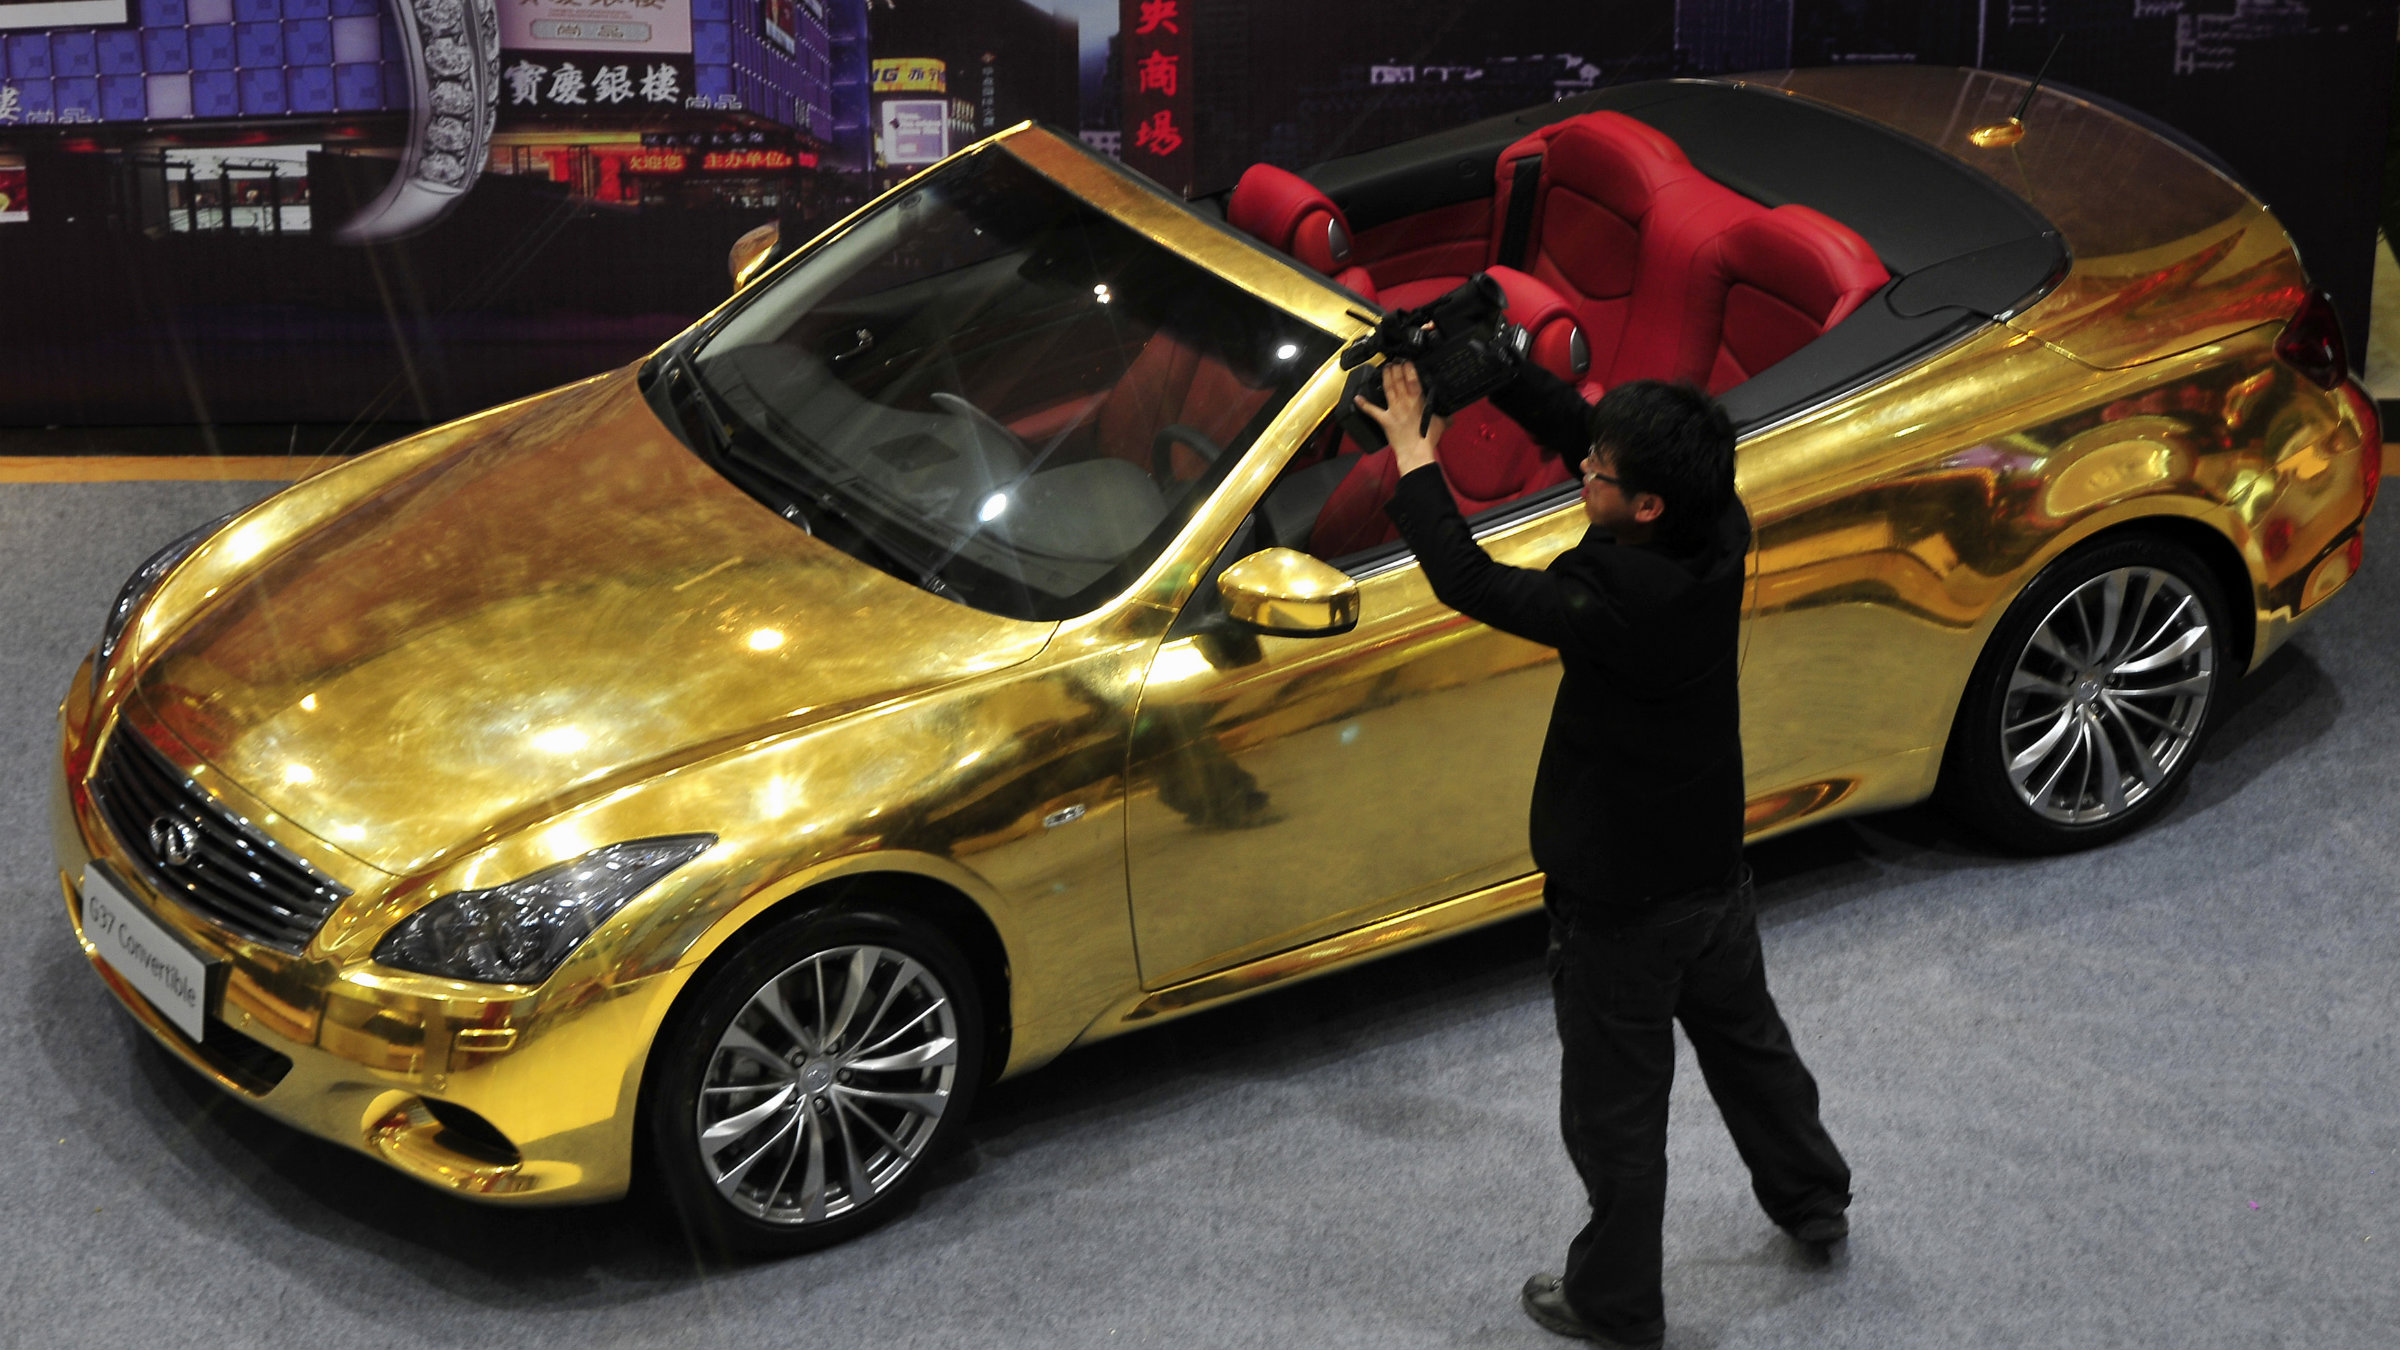 It takes grey income to buy a gold-plated Infiniti G37.